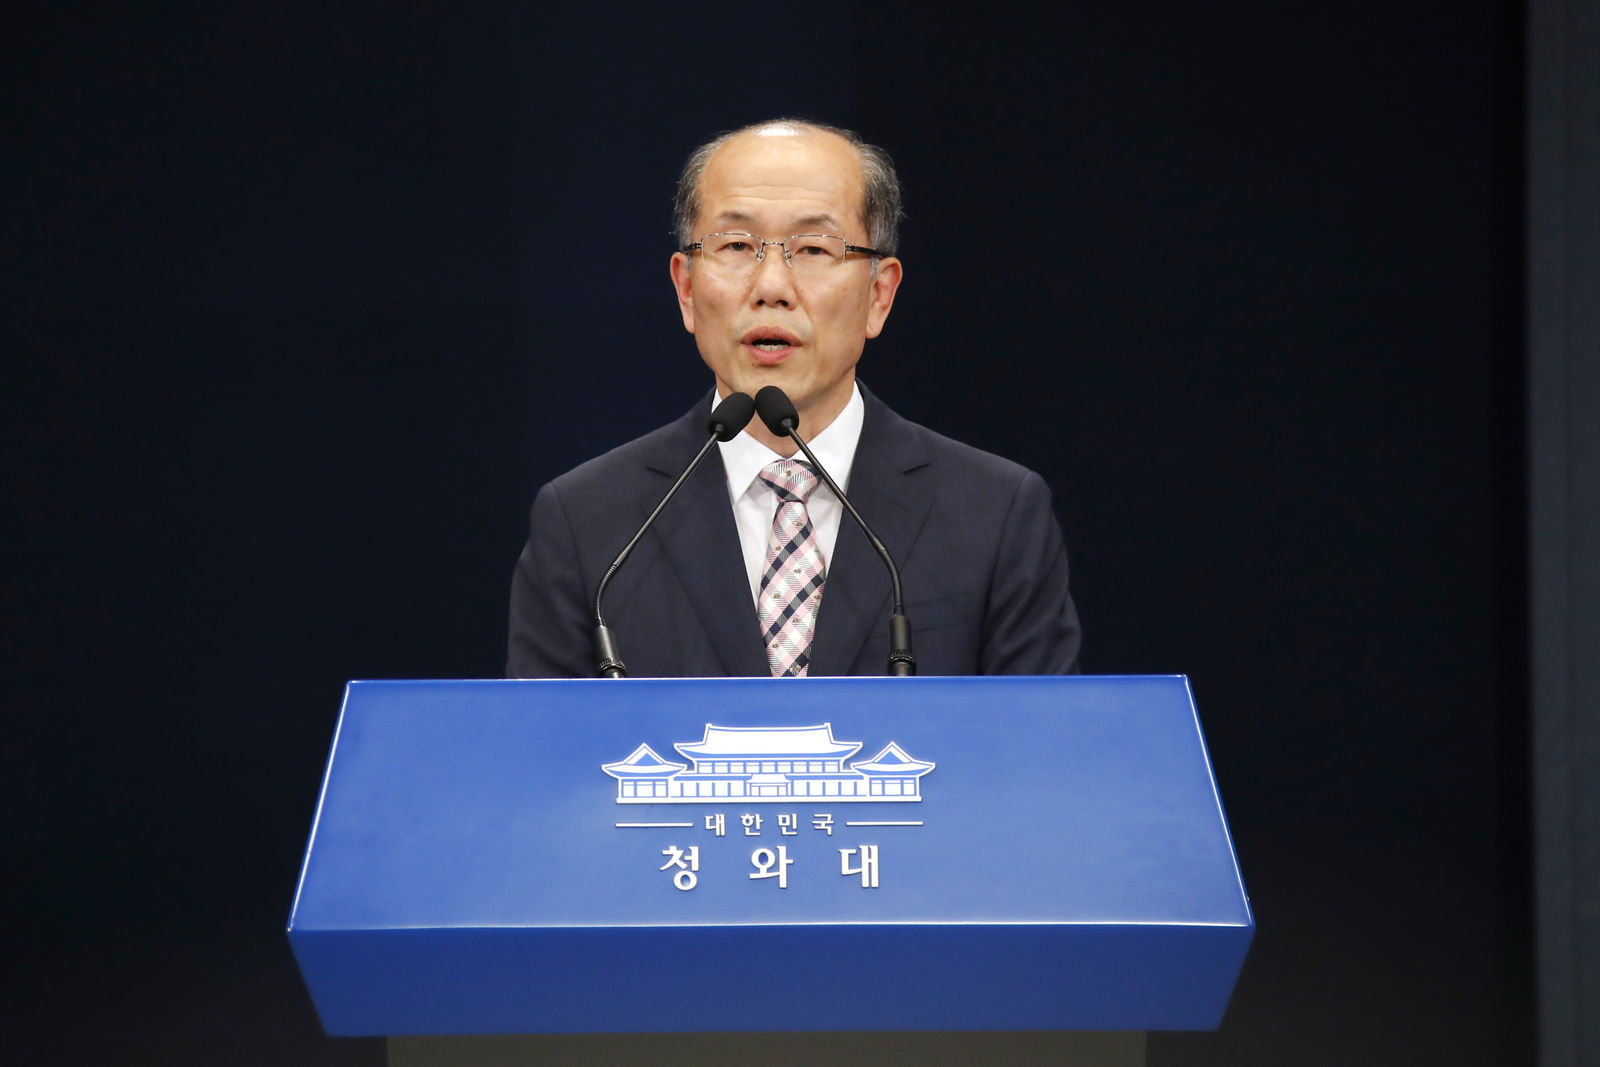 Kim You-geun, deputy director of South Korea's presidential national security office speaks at the presidential Blue House in Seoul, South Korea, Thursday, Aug. 22, 2019.{ } (Bae Jae-man/Yonhap via AP)